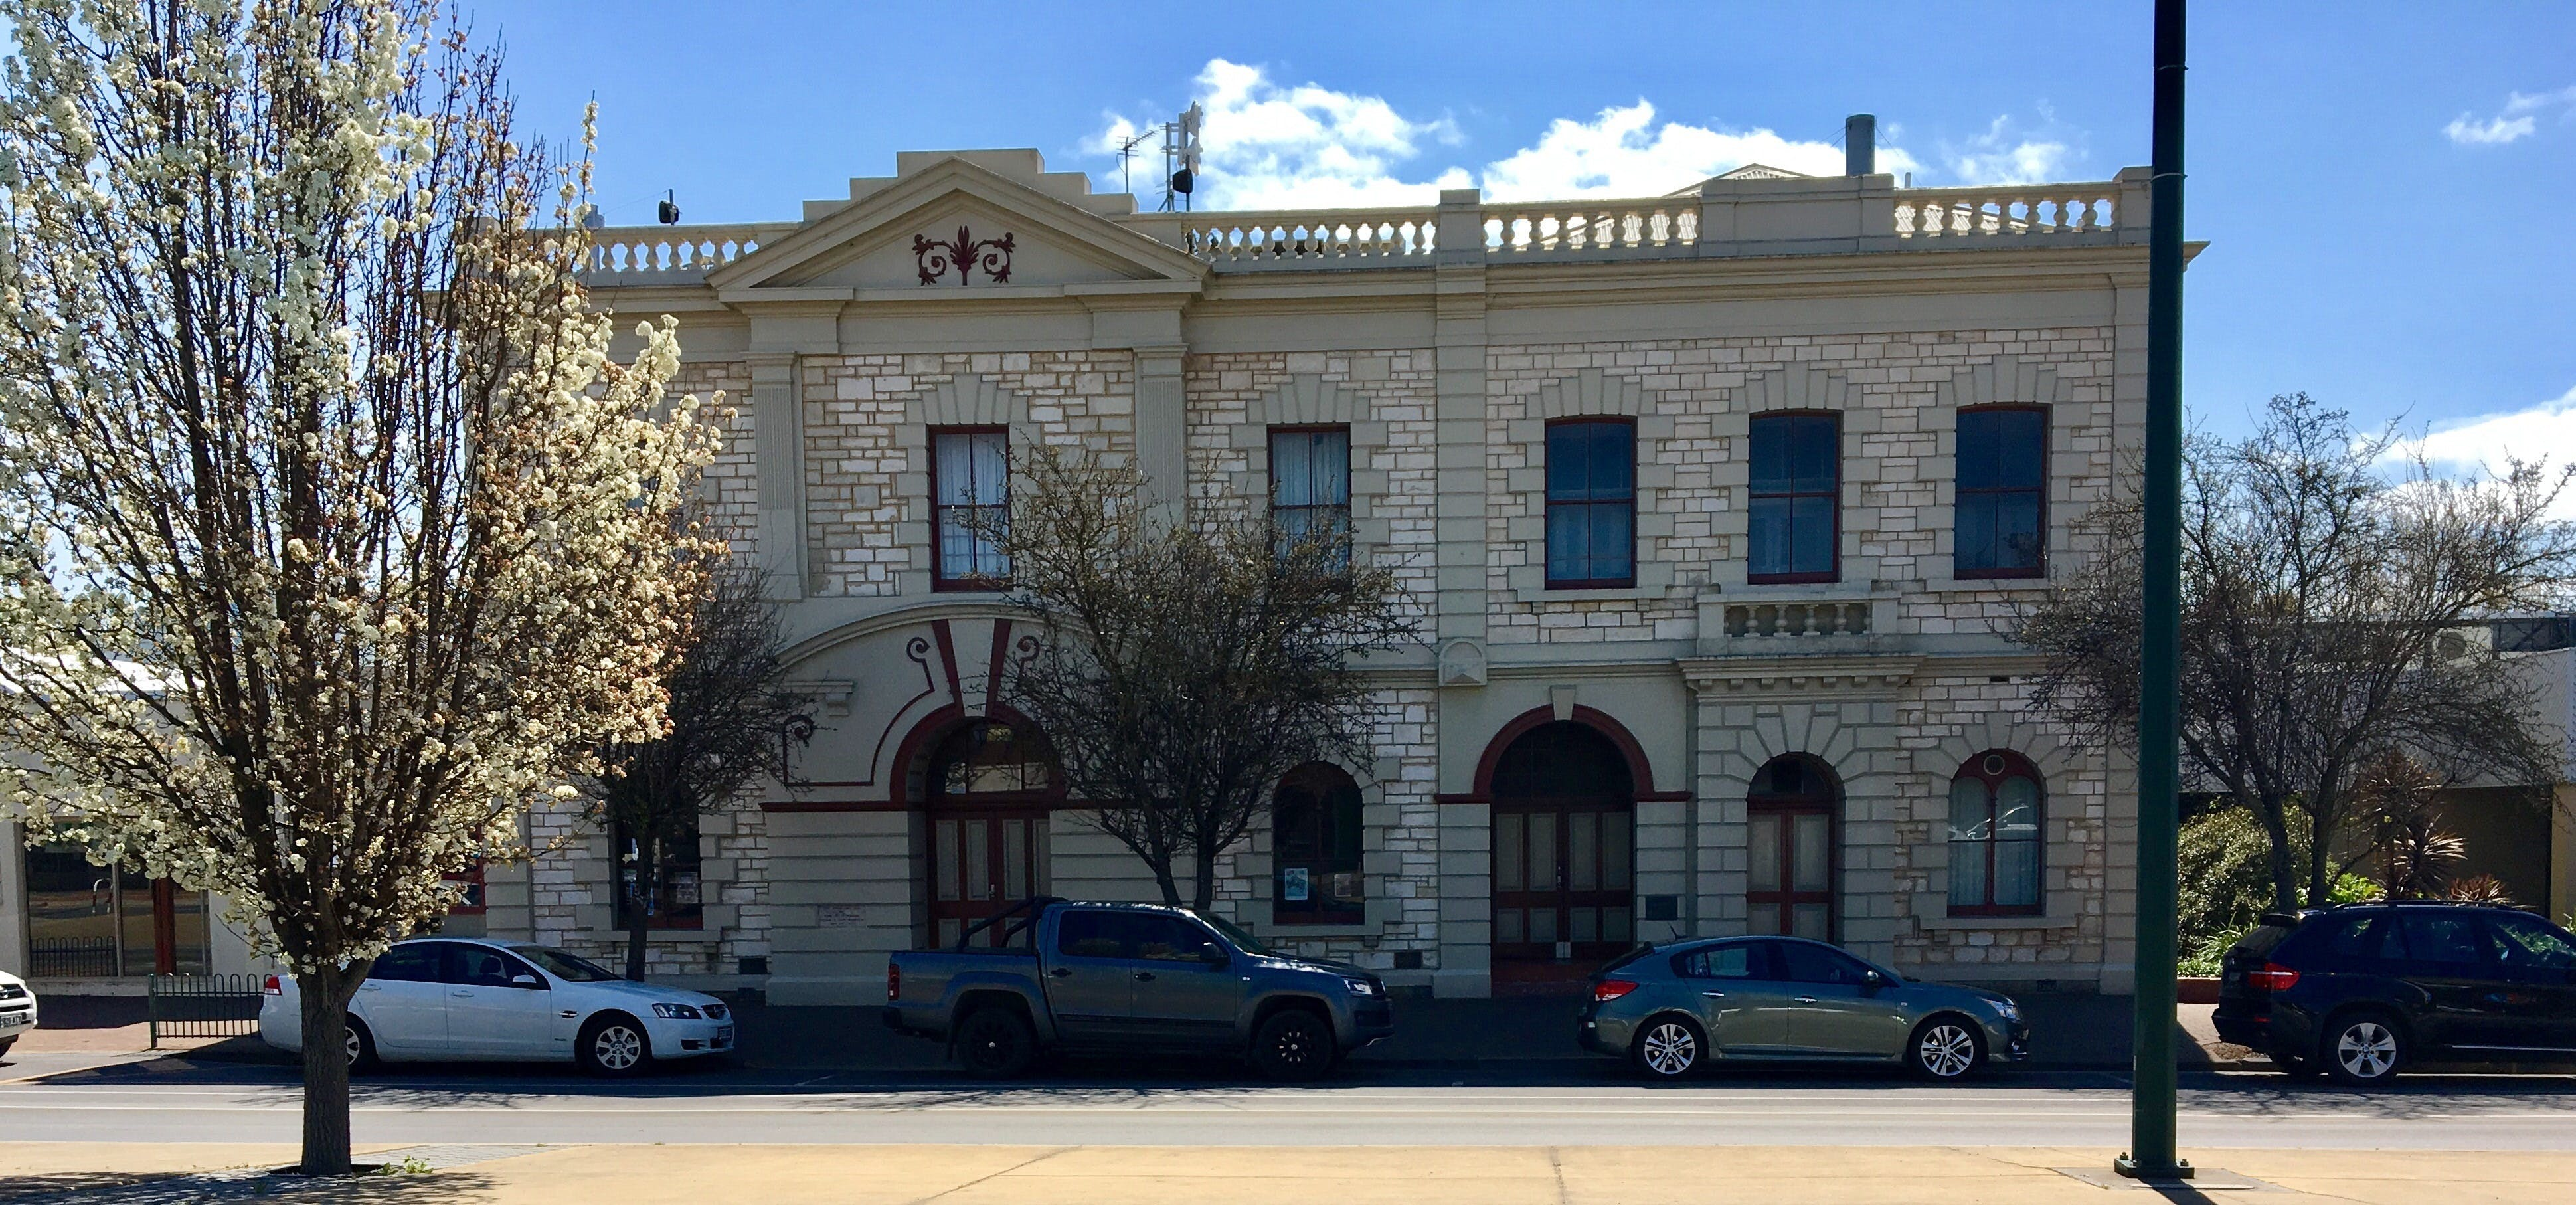 Naracoorte Town Hall - Tourism Brisbane